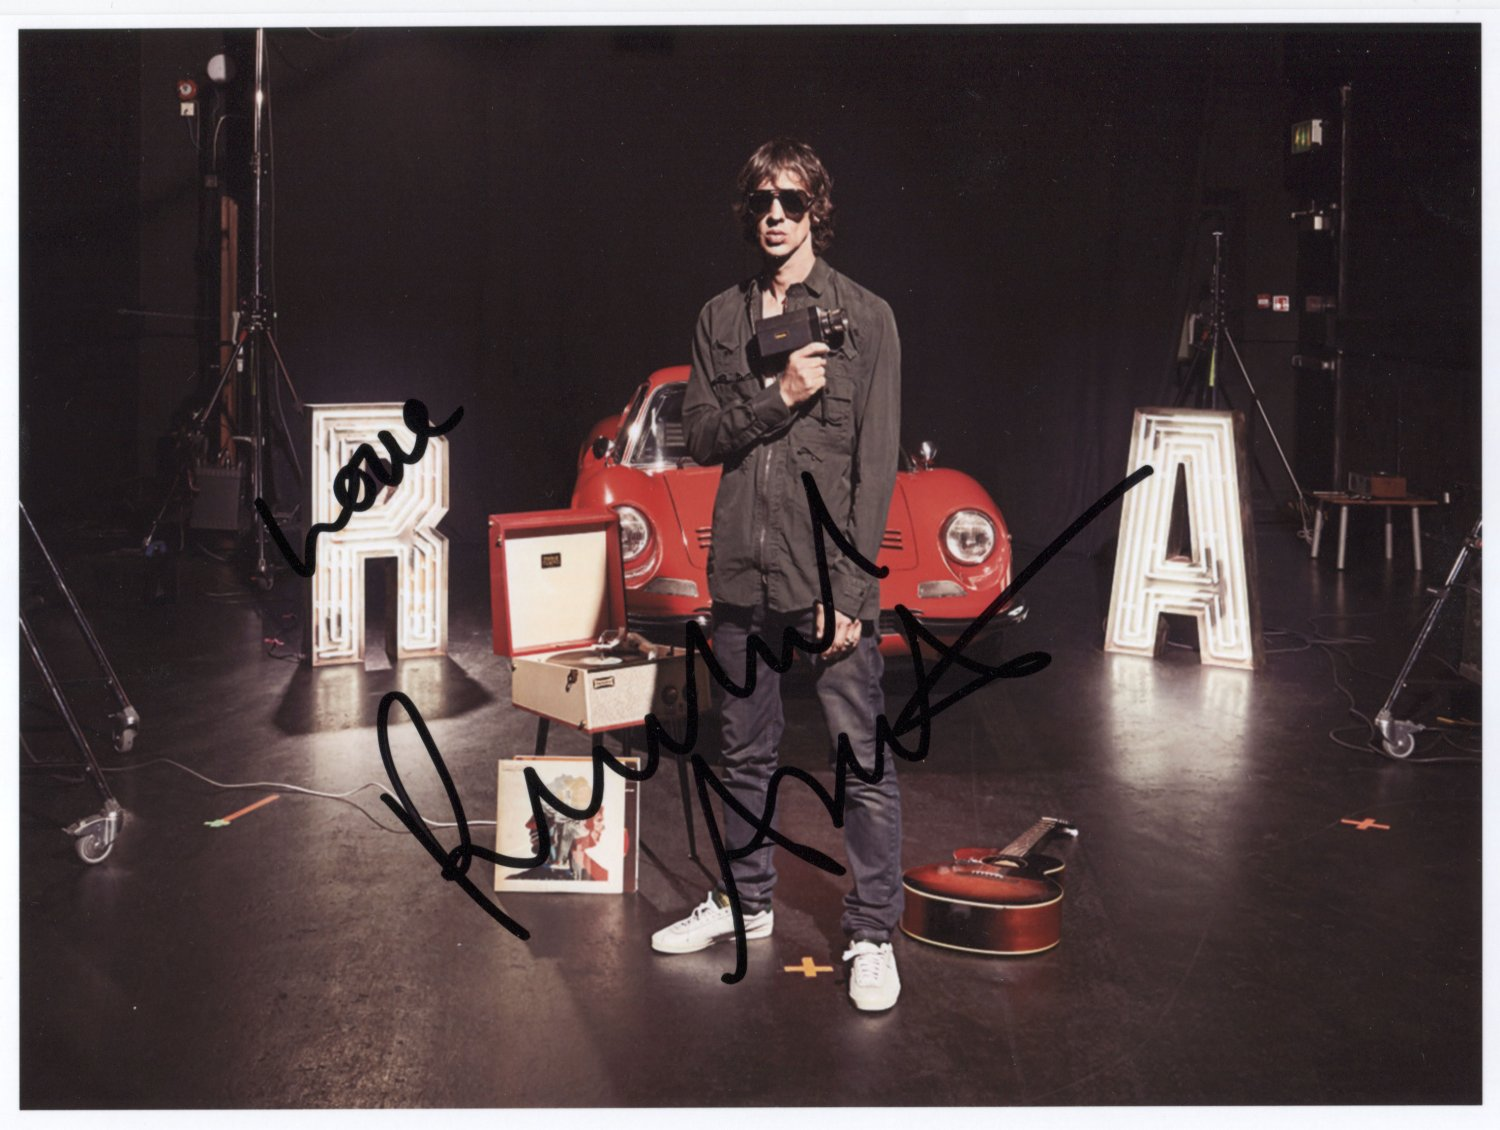 """Richard Ashcroft SIGNED 8"""" x 10"""" Photo + Certificate Of Authentication  100% Genuine Photo Proof"""